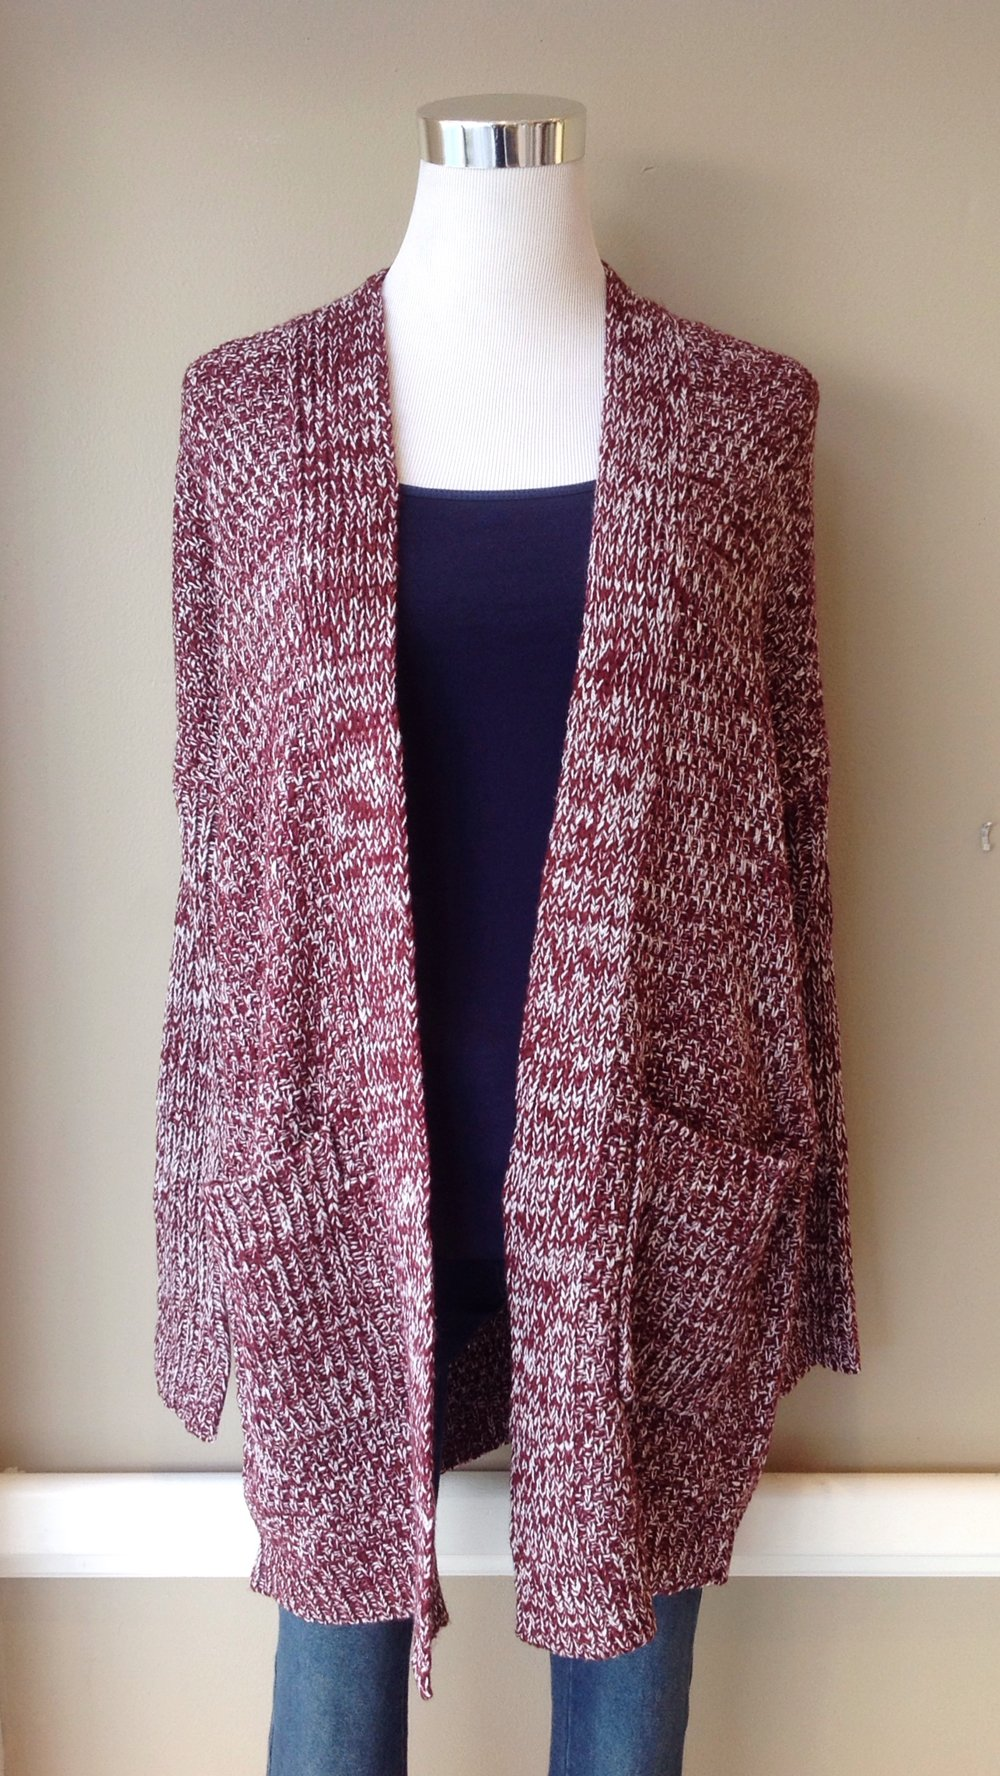 Burgundy and white marled cardigan with patch pockets, $35